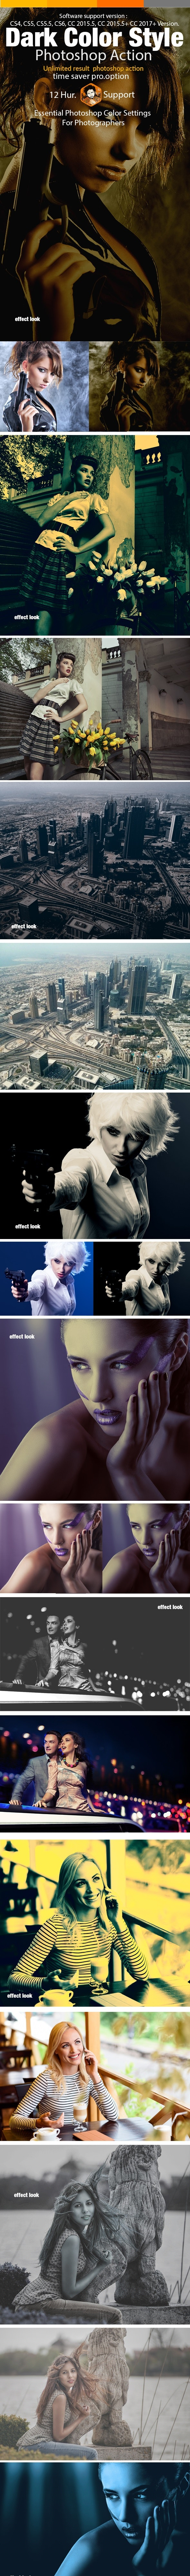 Dark Color Style Action - Actions Photoshop